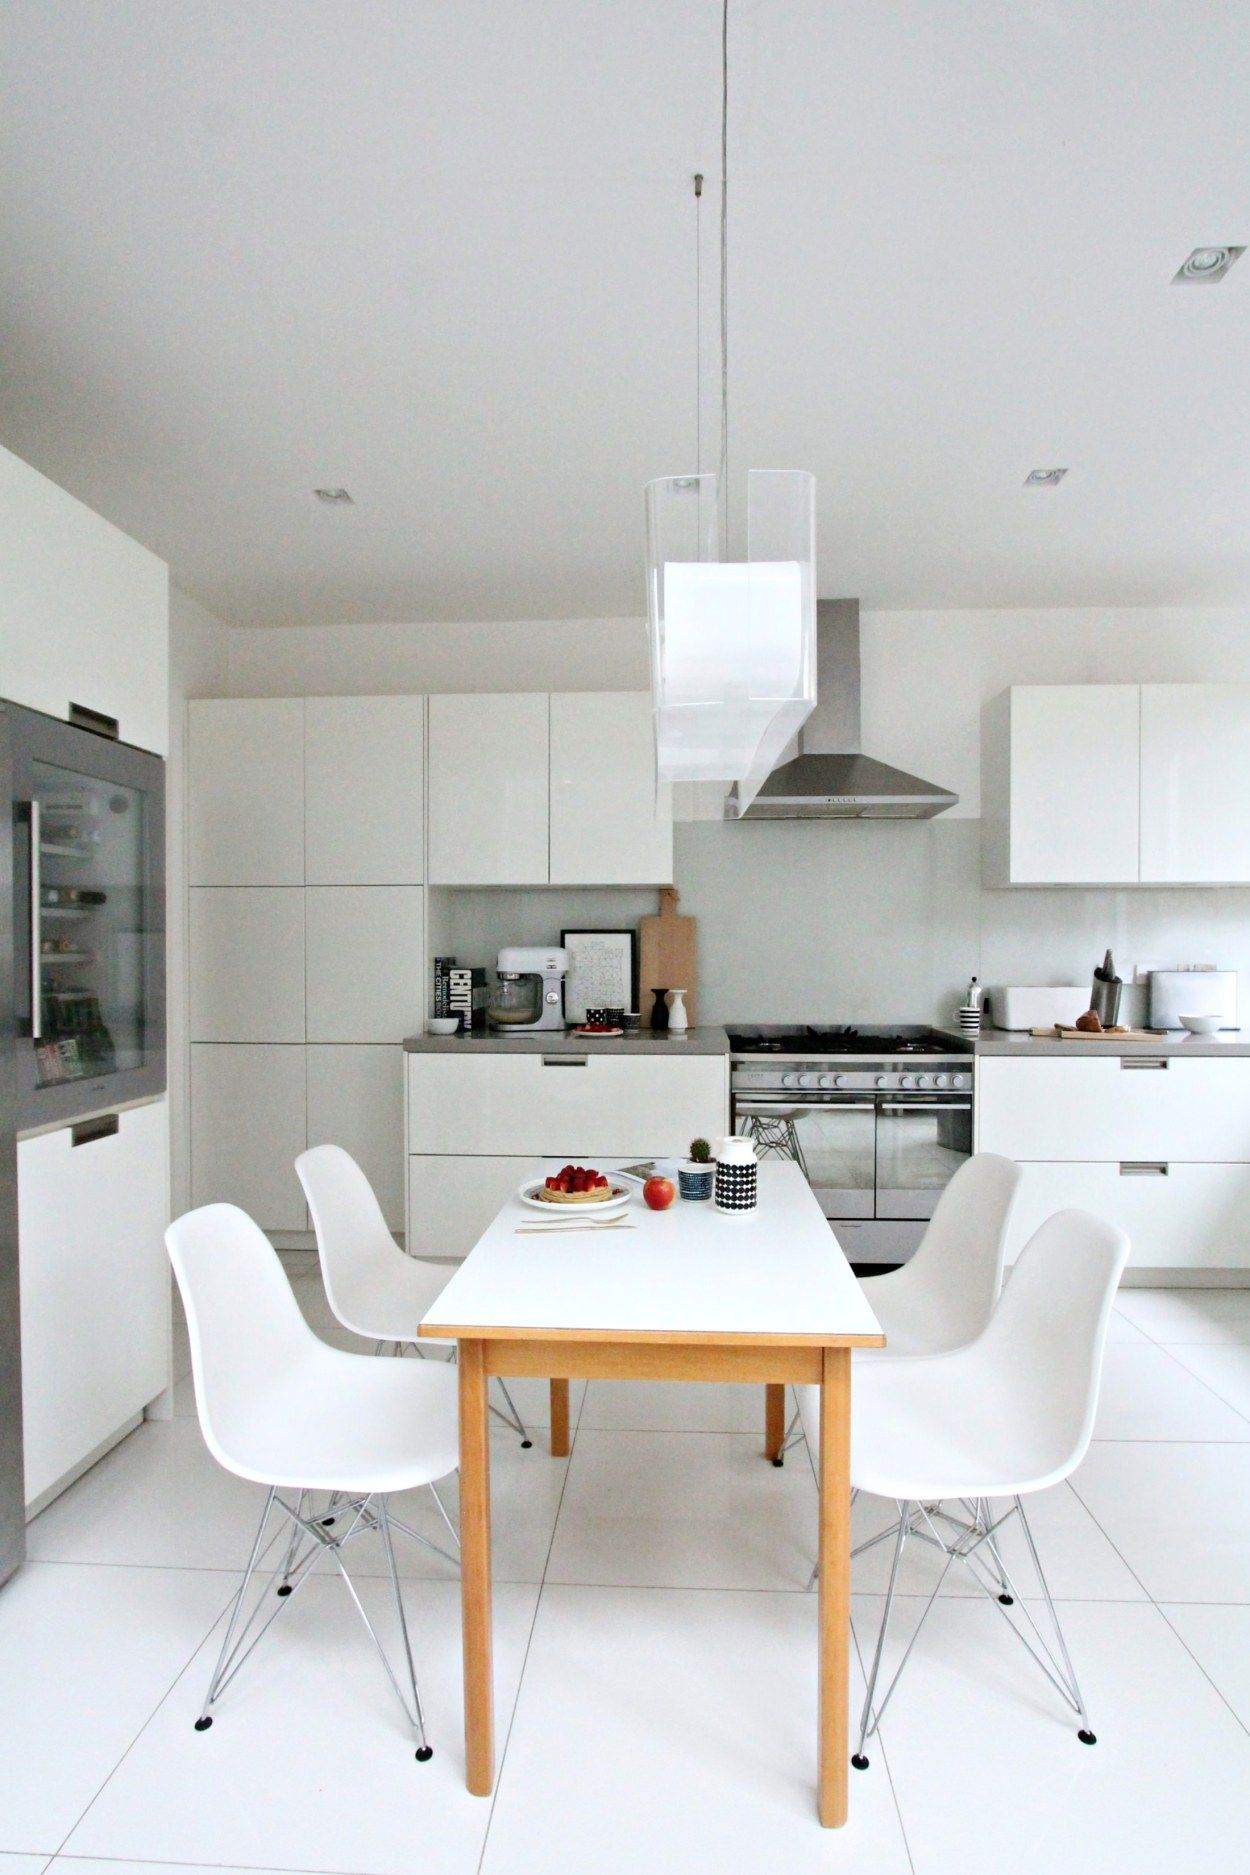 How to add value to your home. Top 5 tips from Sarah Beeny